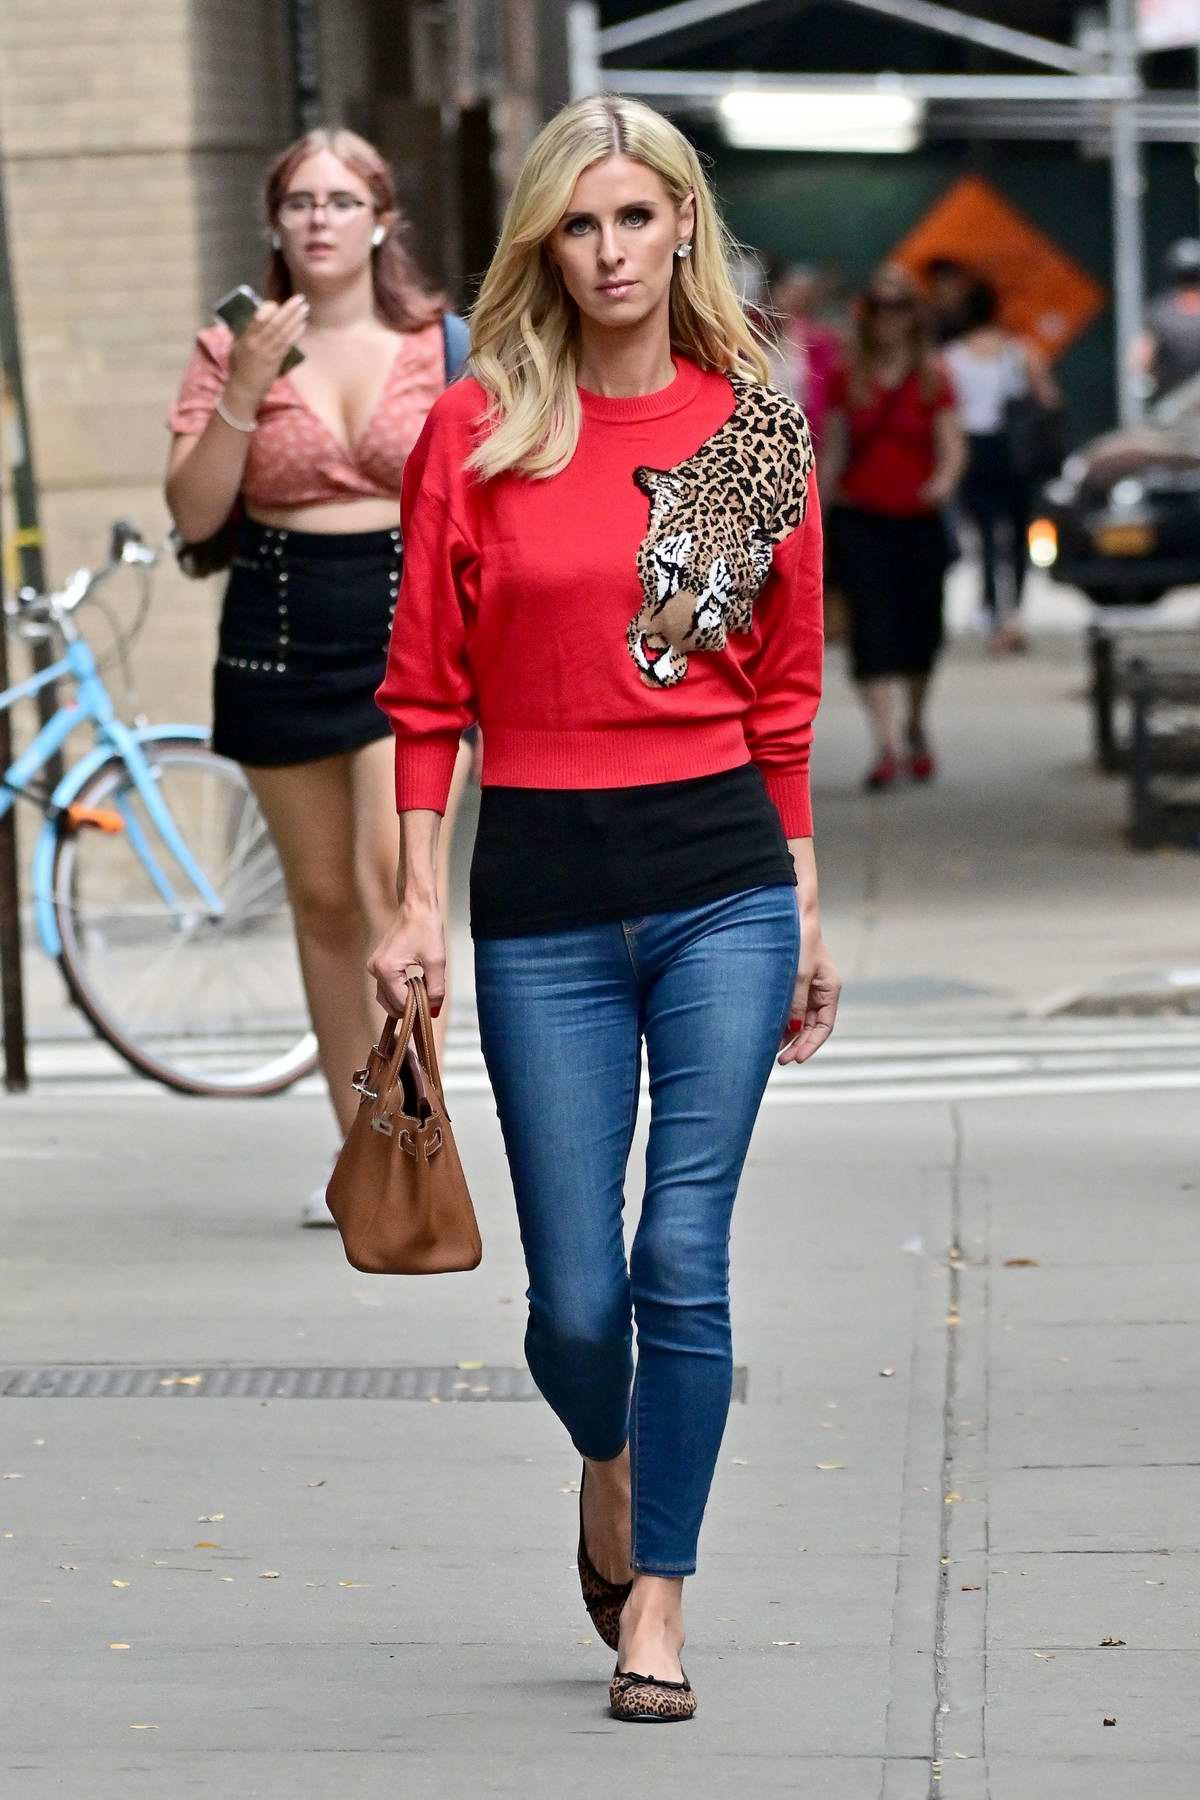 Nicky Hilton looks stylish in a cheetah style red sweater and jeans while out in New York City